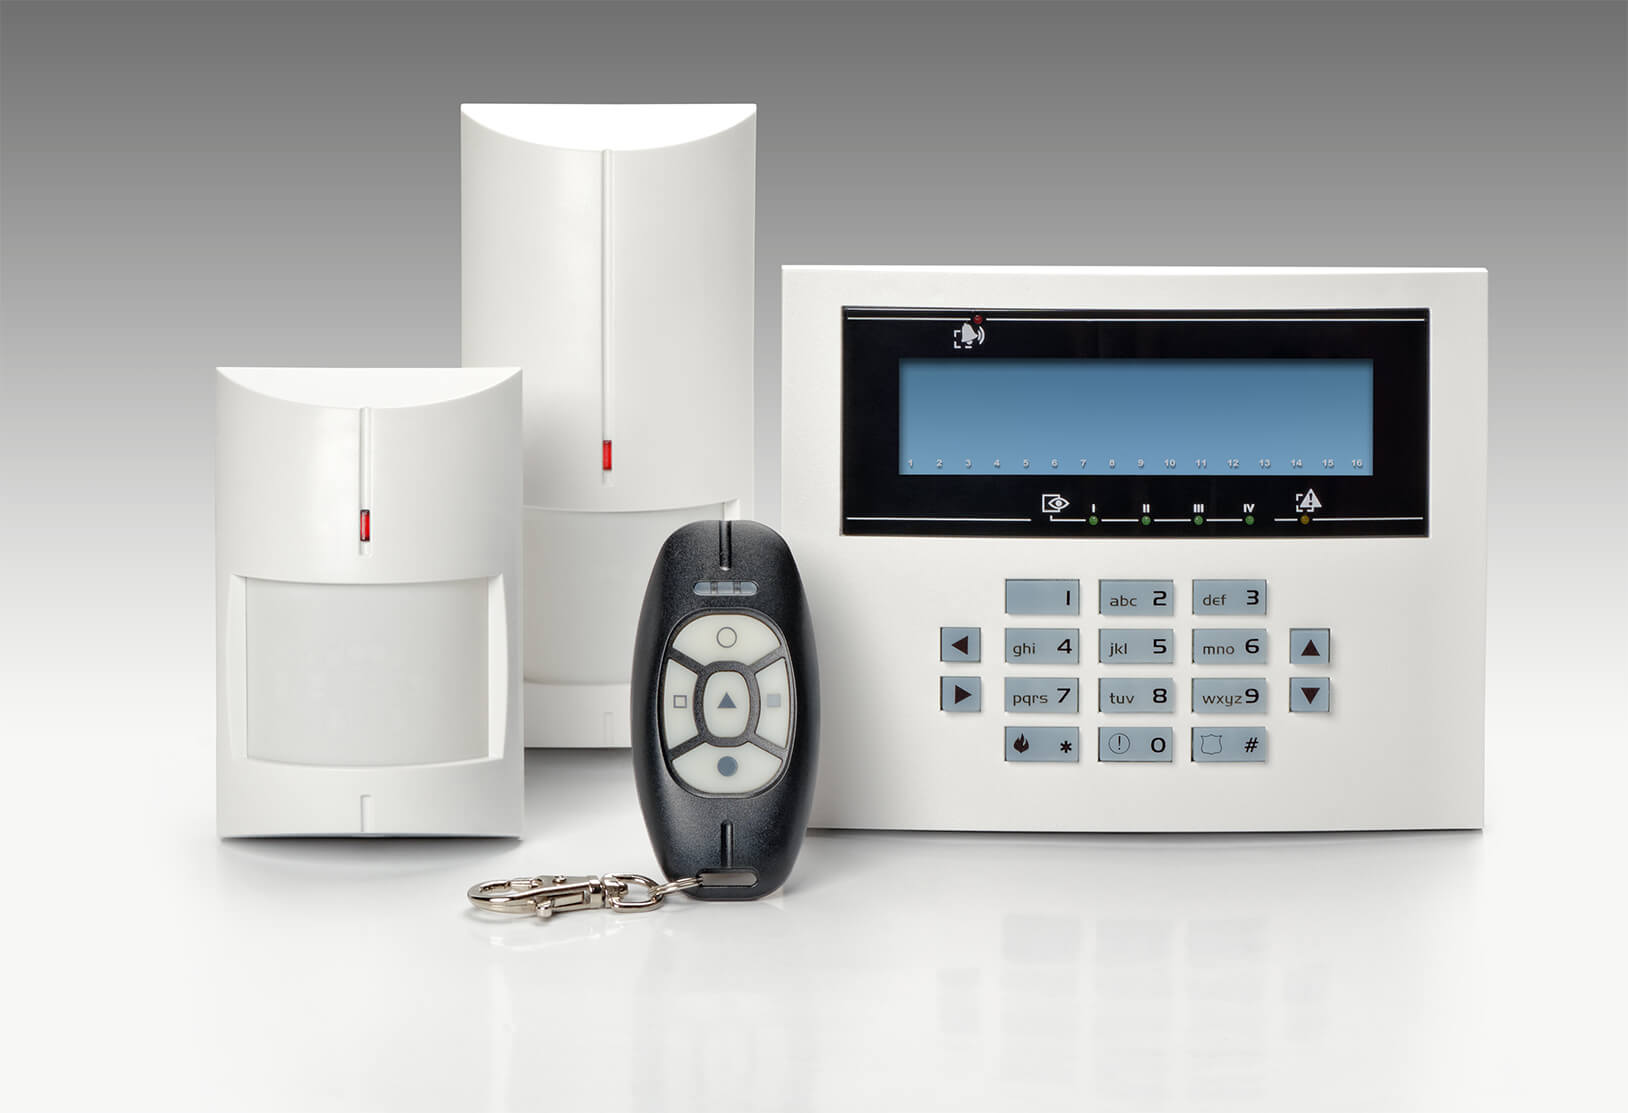 Commercial Burglar Alarms For Business in Kentish Town NW5  - Local Kentish Town NW5 burglar alarm company.Call 02078872244 - Dedicated to Safety & Security. Companies, shops and homes ..